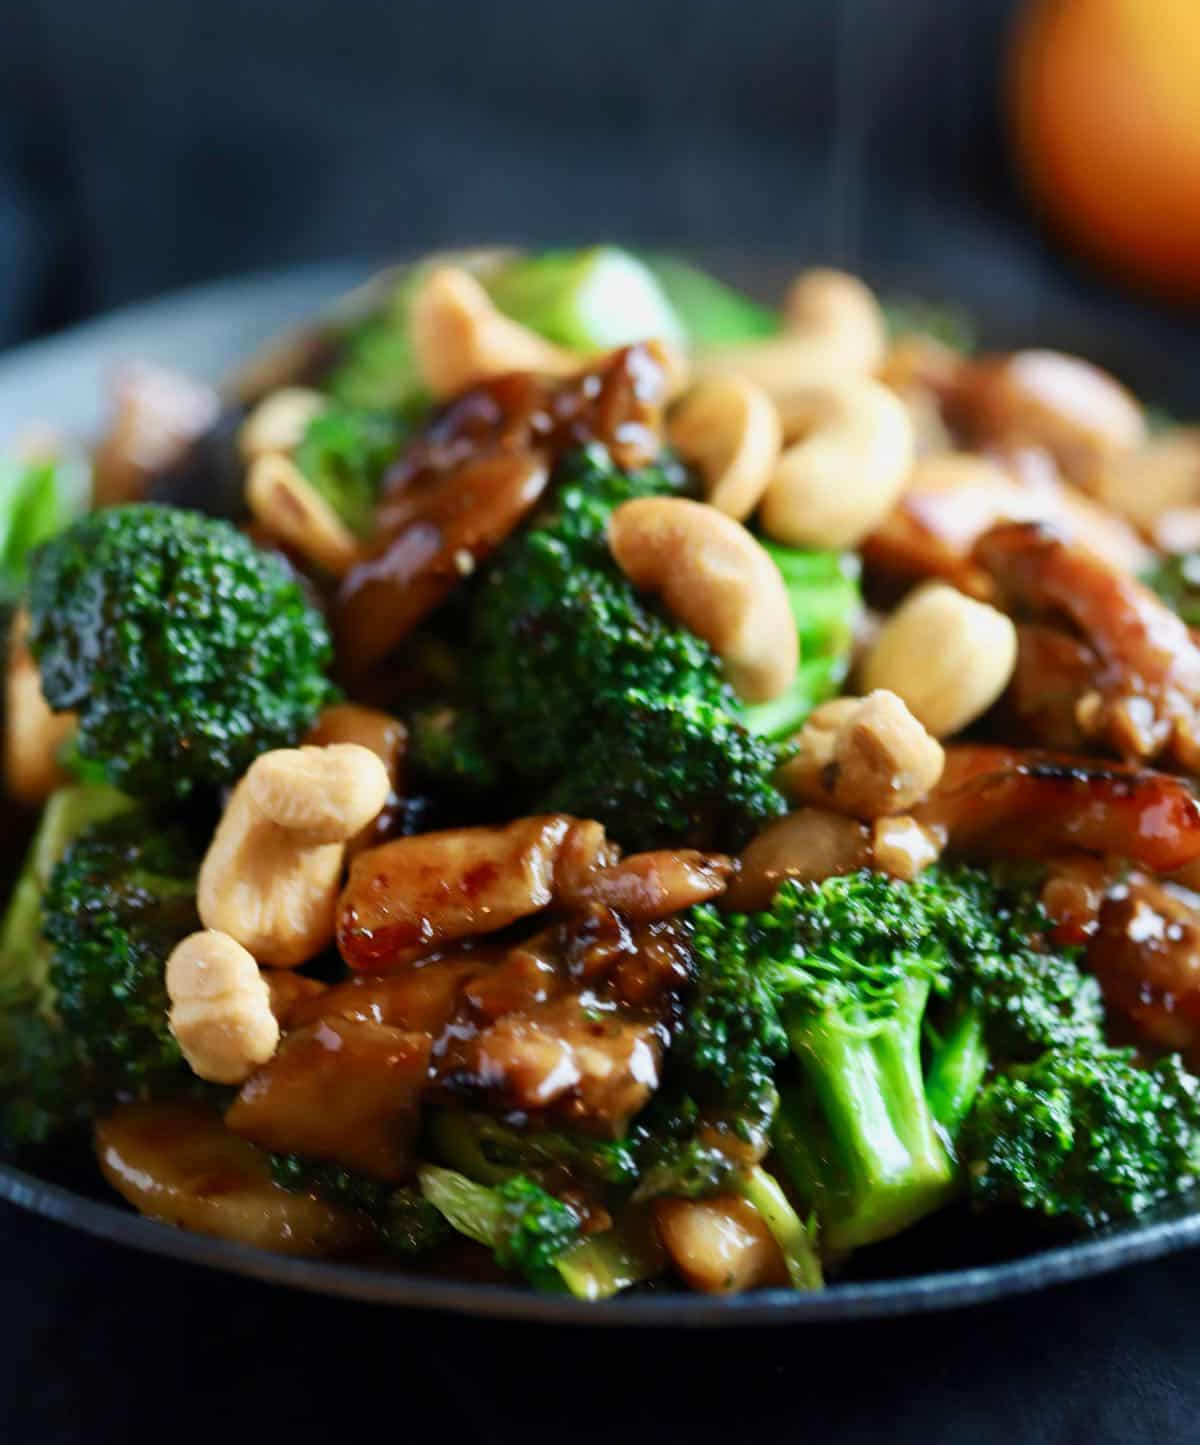 Pieces of chicken and broccoli florets in a black skillet.